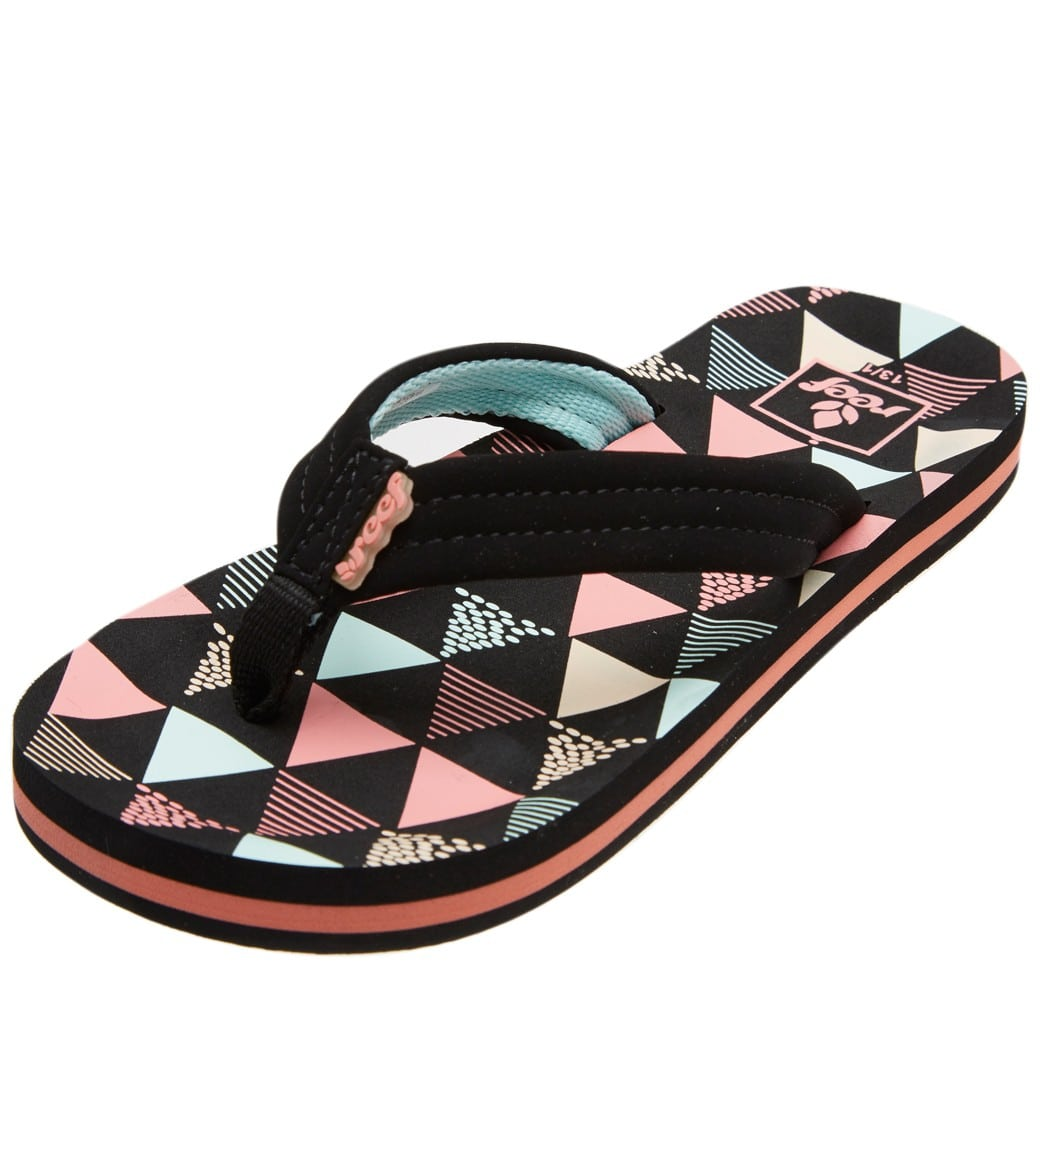 d672260a89c Reef Girls  Ahi Flip Flop (Little Kid Big Kid) at SwimOutlet.com